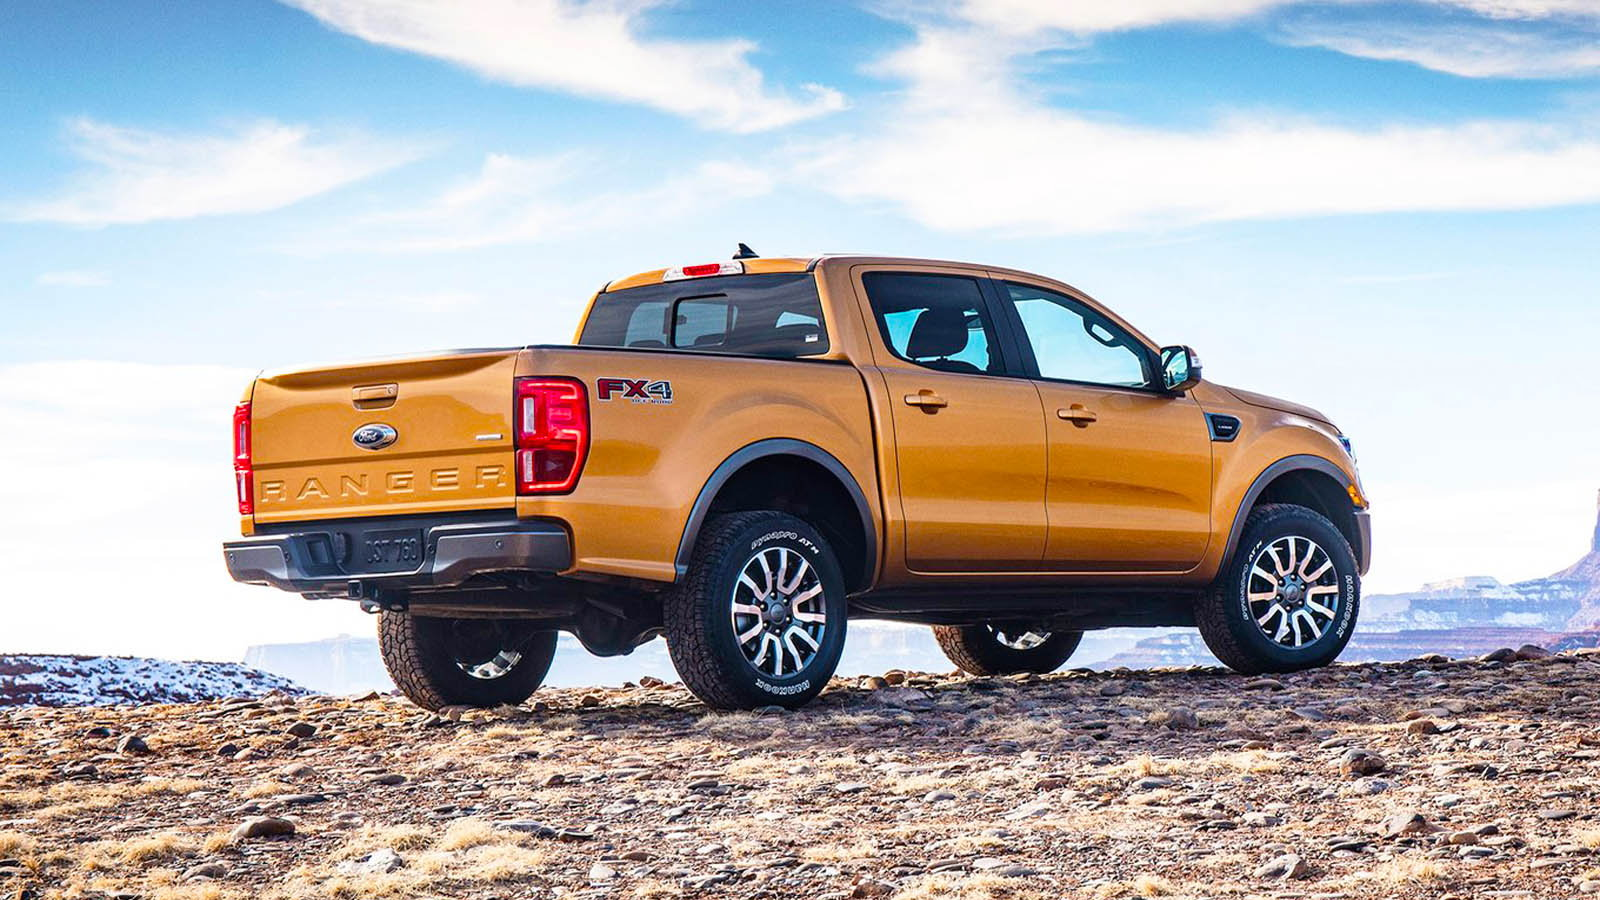 Ford Ranger Raptor Has Landed Stateside